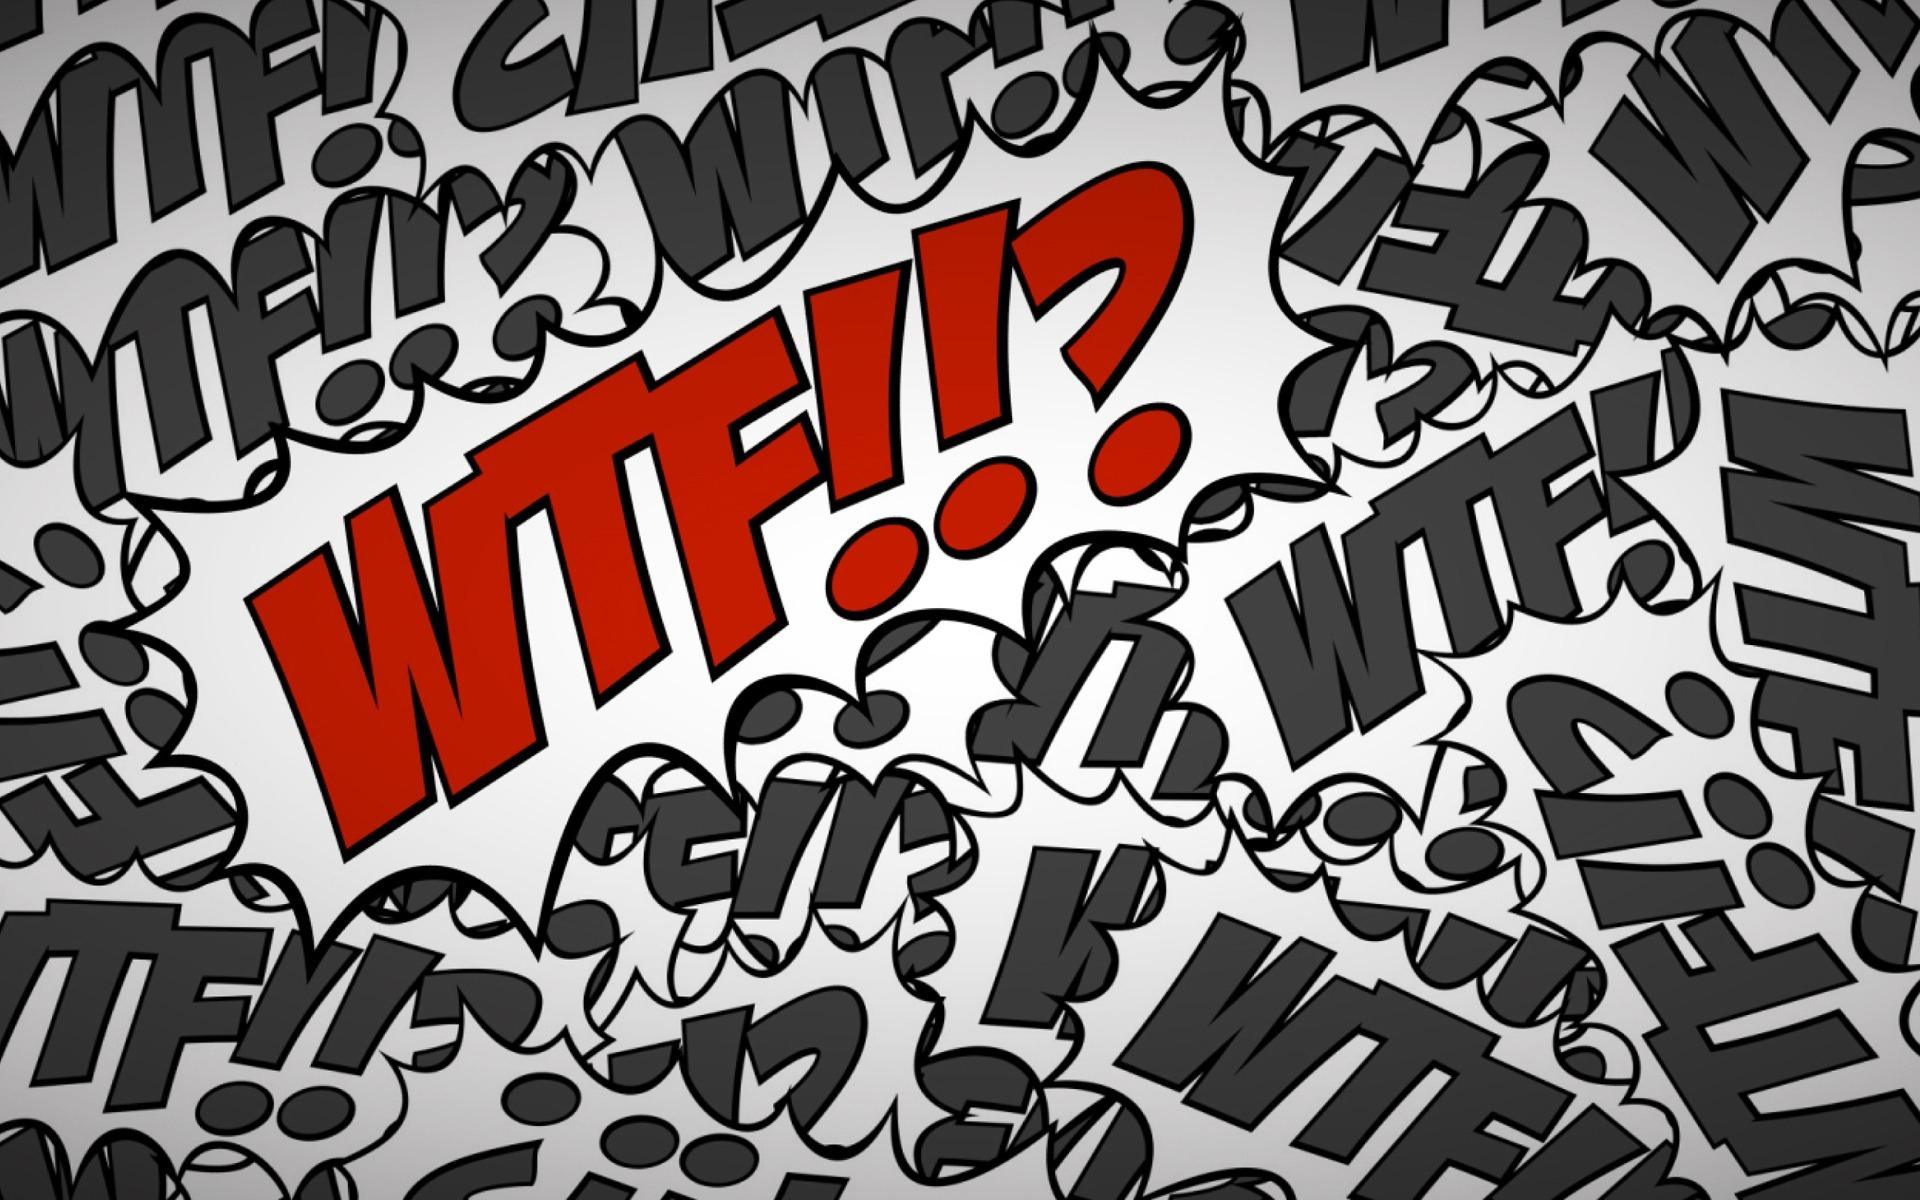 WTF Internet Slang Desktop Wallpaper 1920x1200